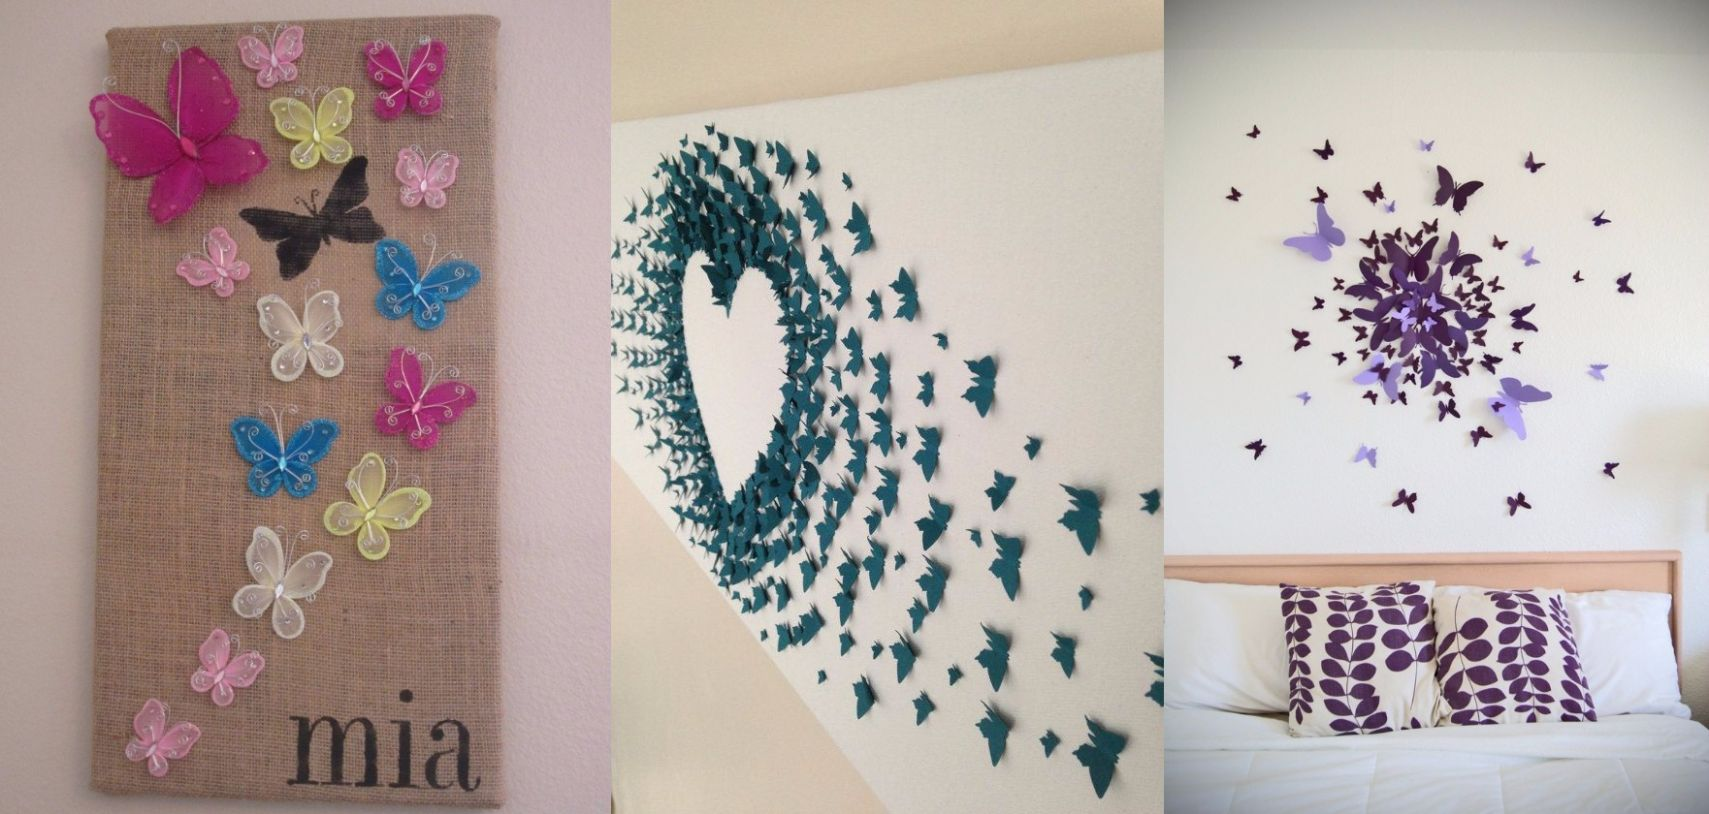 8 DIY Butterfly Wall Decor Ideas With Directions - A DIY Projects - wall decoration ideas with ribbons